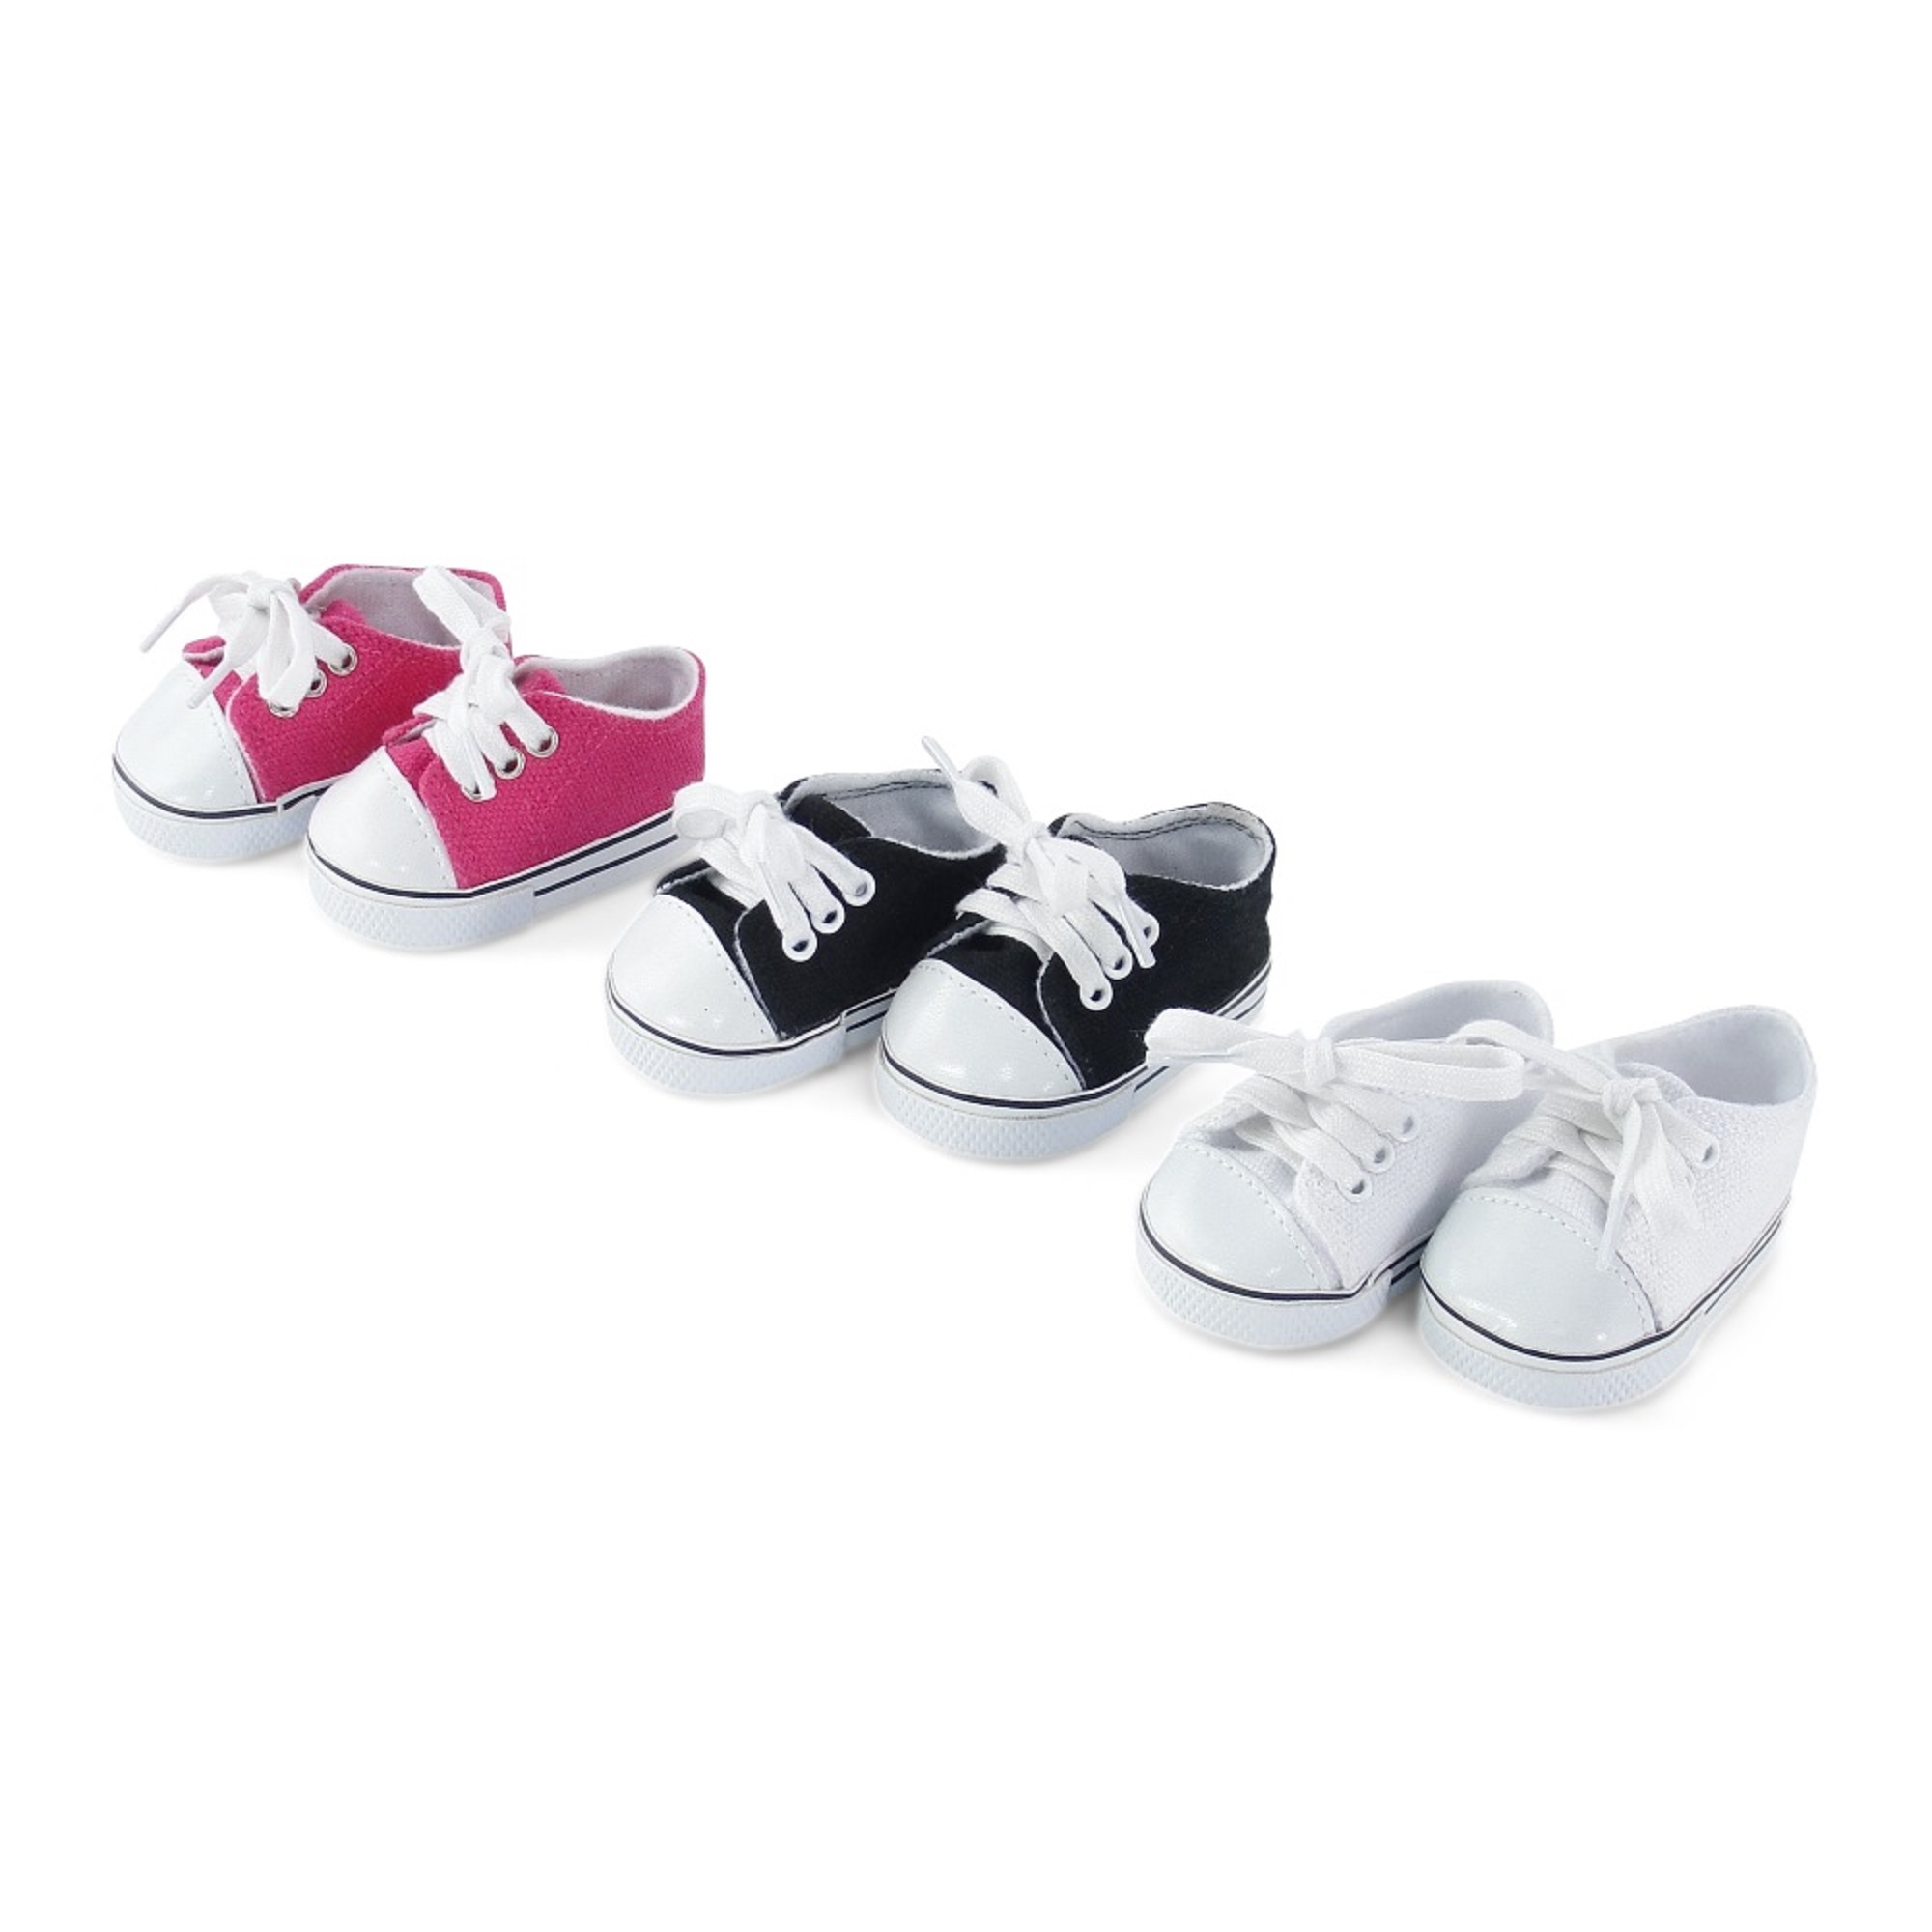 18 Inch Doll Clothes| Versatile Canvas Doll Sneakers Basics Value 3-pack, Including Bright Pink, White and Black Tennis Shoes |Fits American Girl Dolls